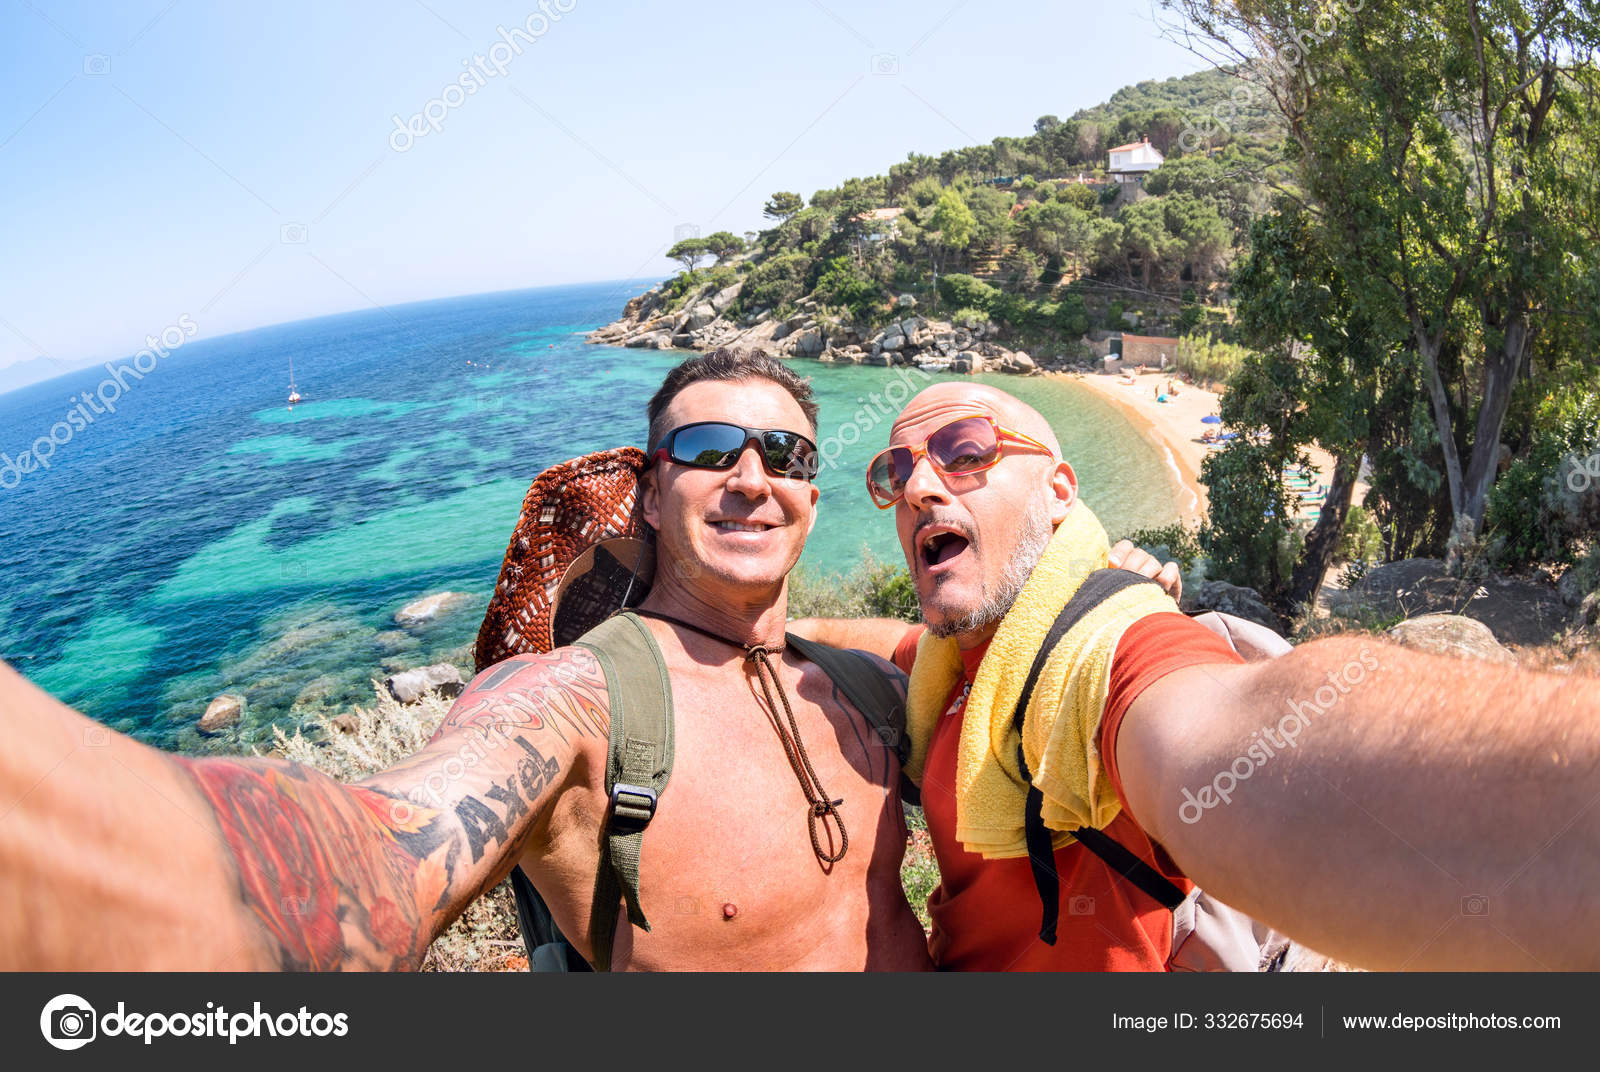 Best Friends Taking Selfie At Giglio Island On Adventure Travel Wanderlust Lifestyle Concept With Gay Couple Enjoying Happy Fun Moment Trip Together Around World Beauties Bright Vivid Filter